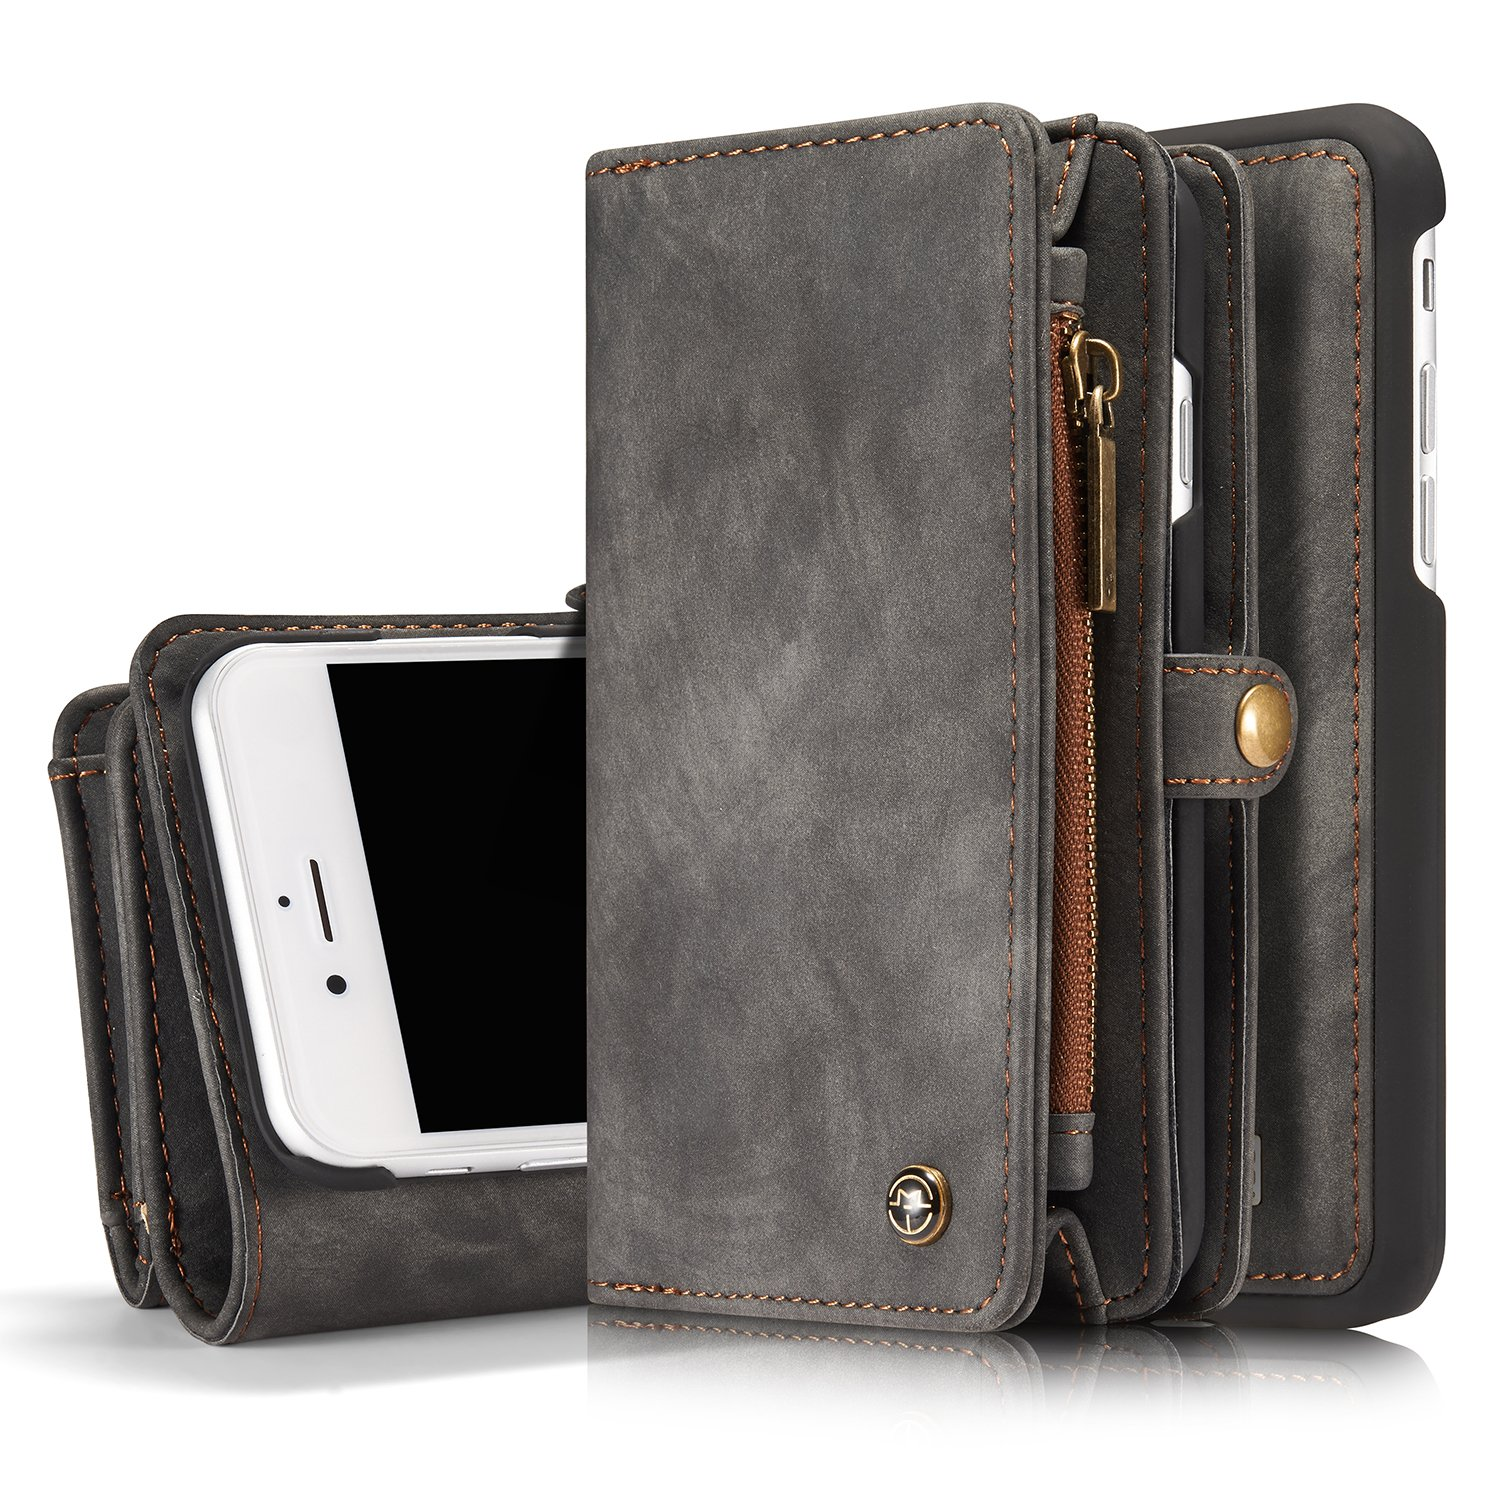 MOONORN iPhone 7 Plus/iPhone 8 Plus Wallet Case - Detachable Leather Phone Wallet Magnetic Flip Case Shockproof Cell Phone Case with Credit Card Slots (Black)